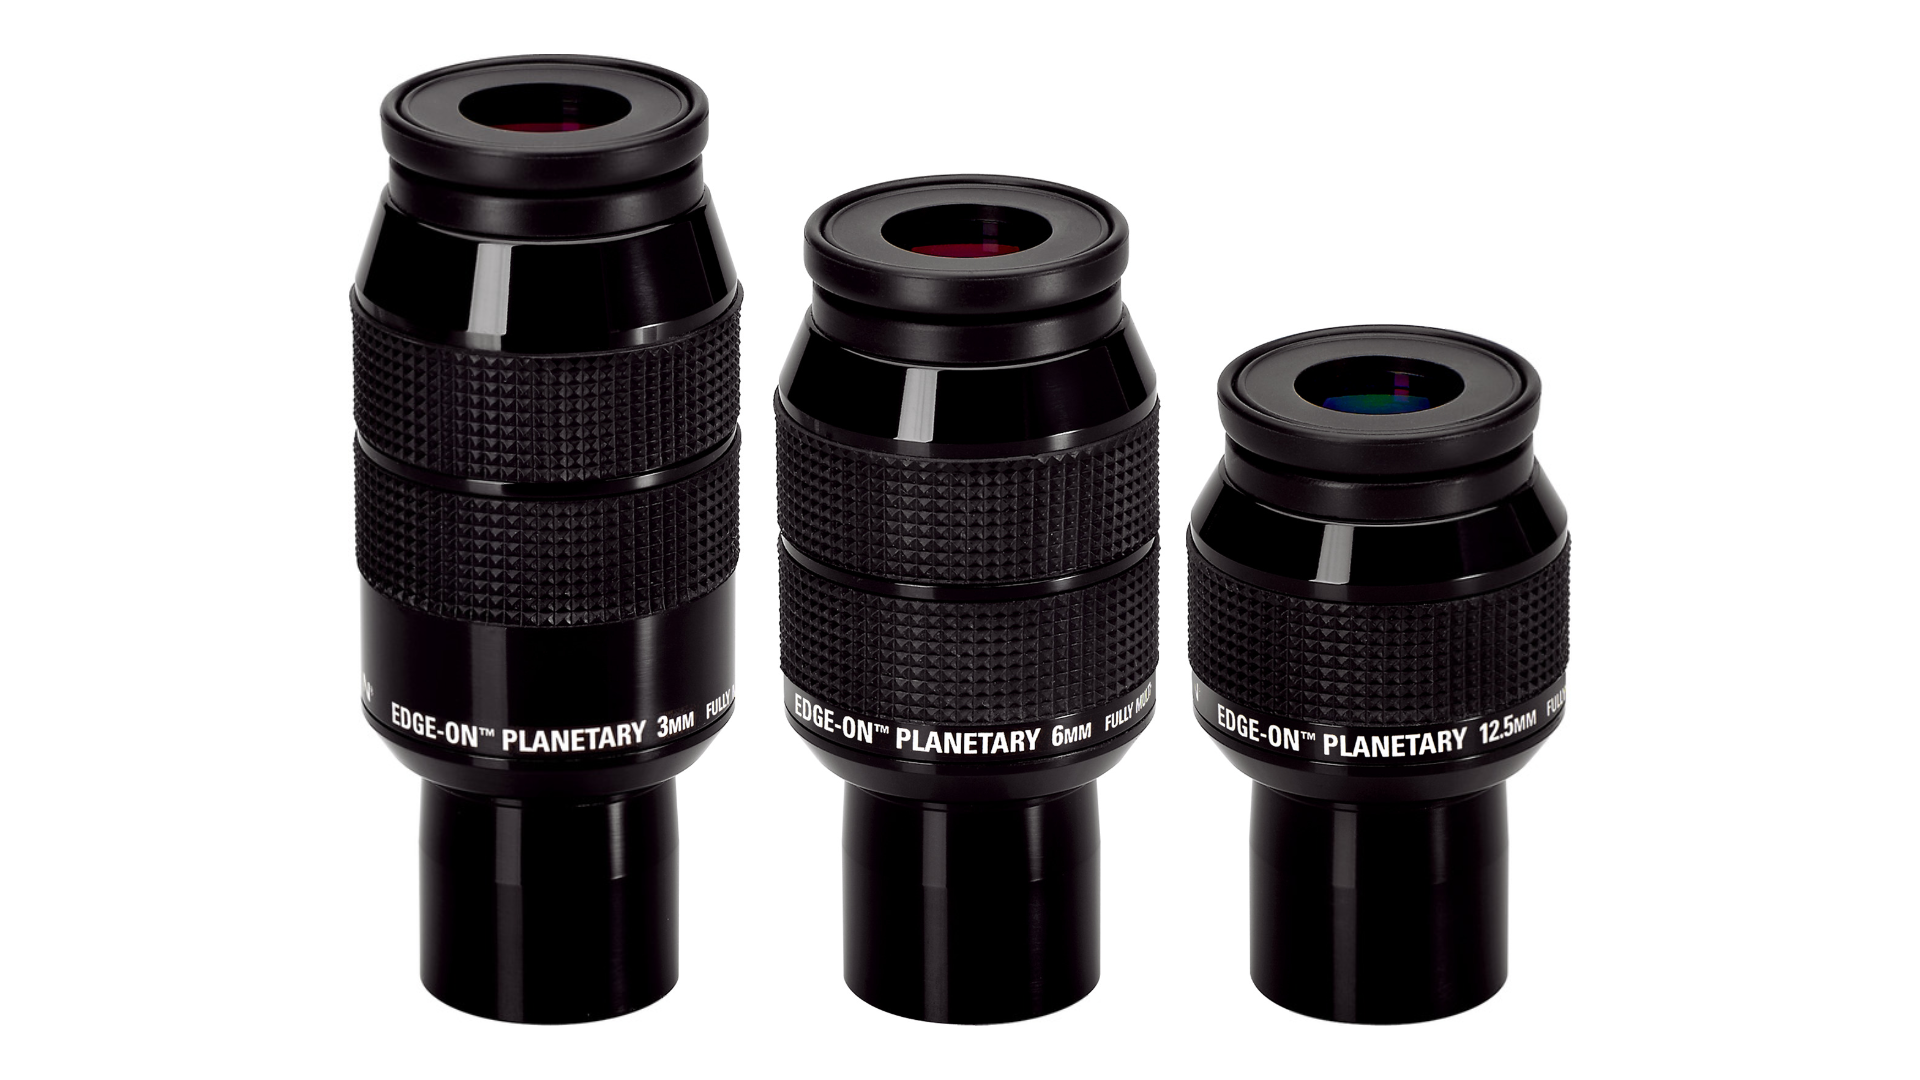 Orion Edge-On Planetary Eyepiece Set (12.5mm, 6mm, and 3mm)